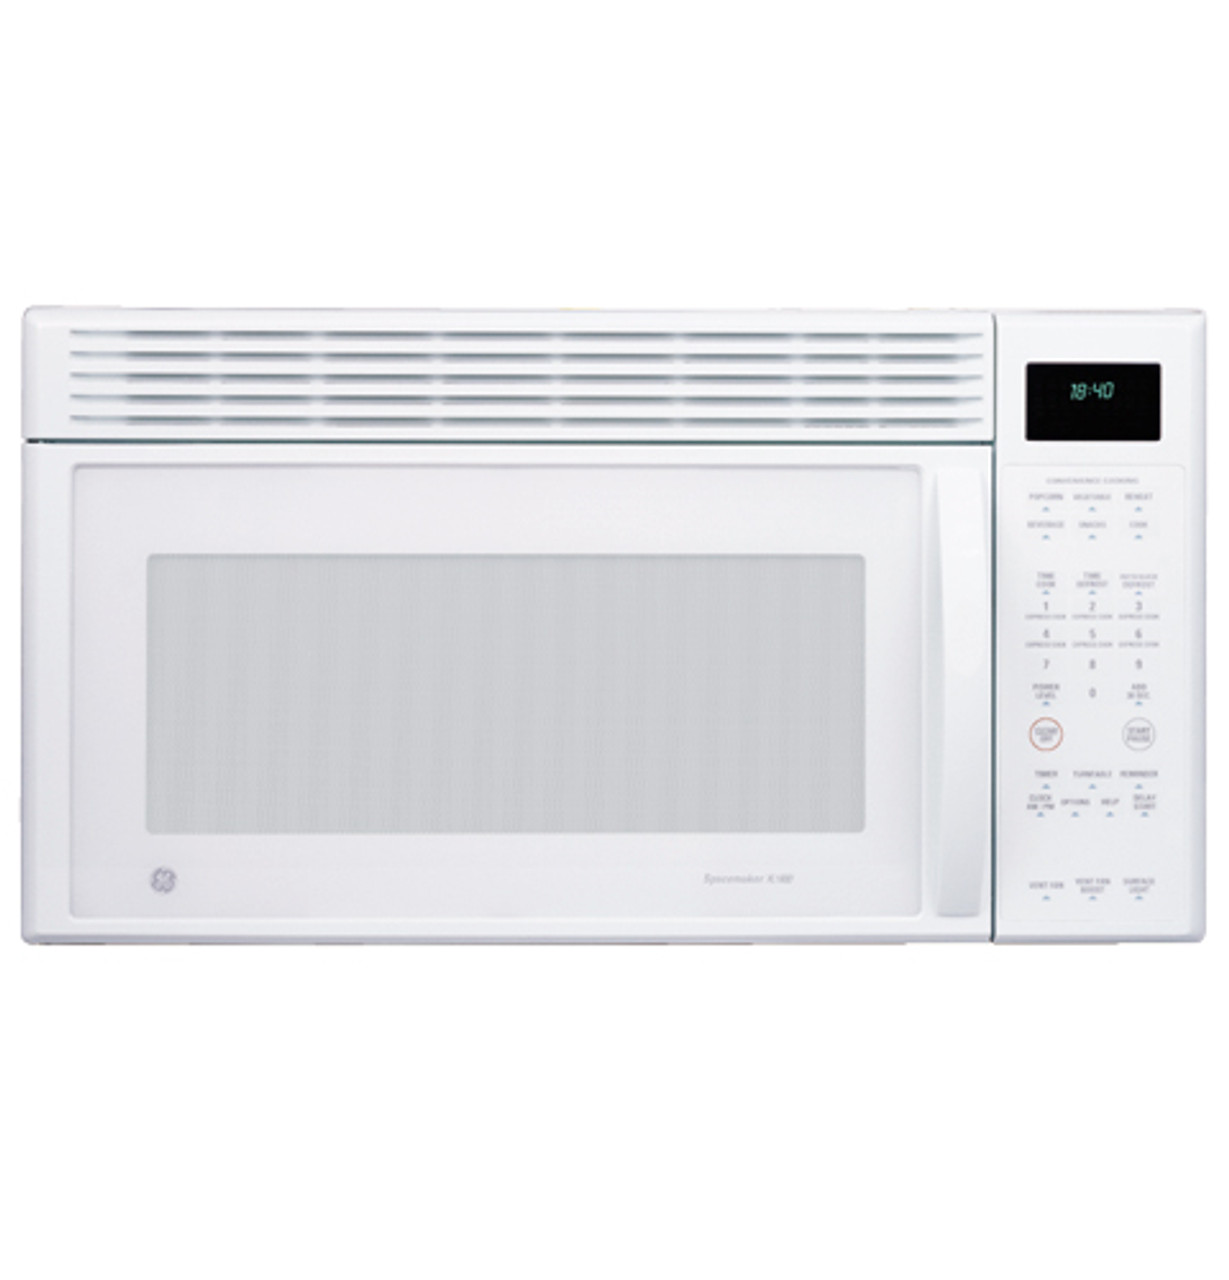 ge spacemaker xl1800 microwave oven jvm1840wd